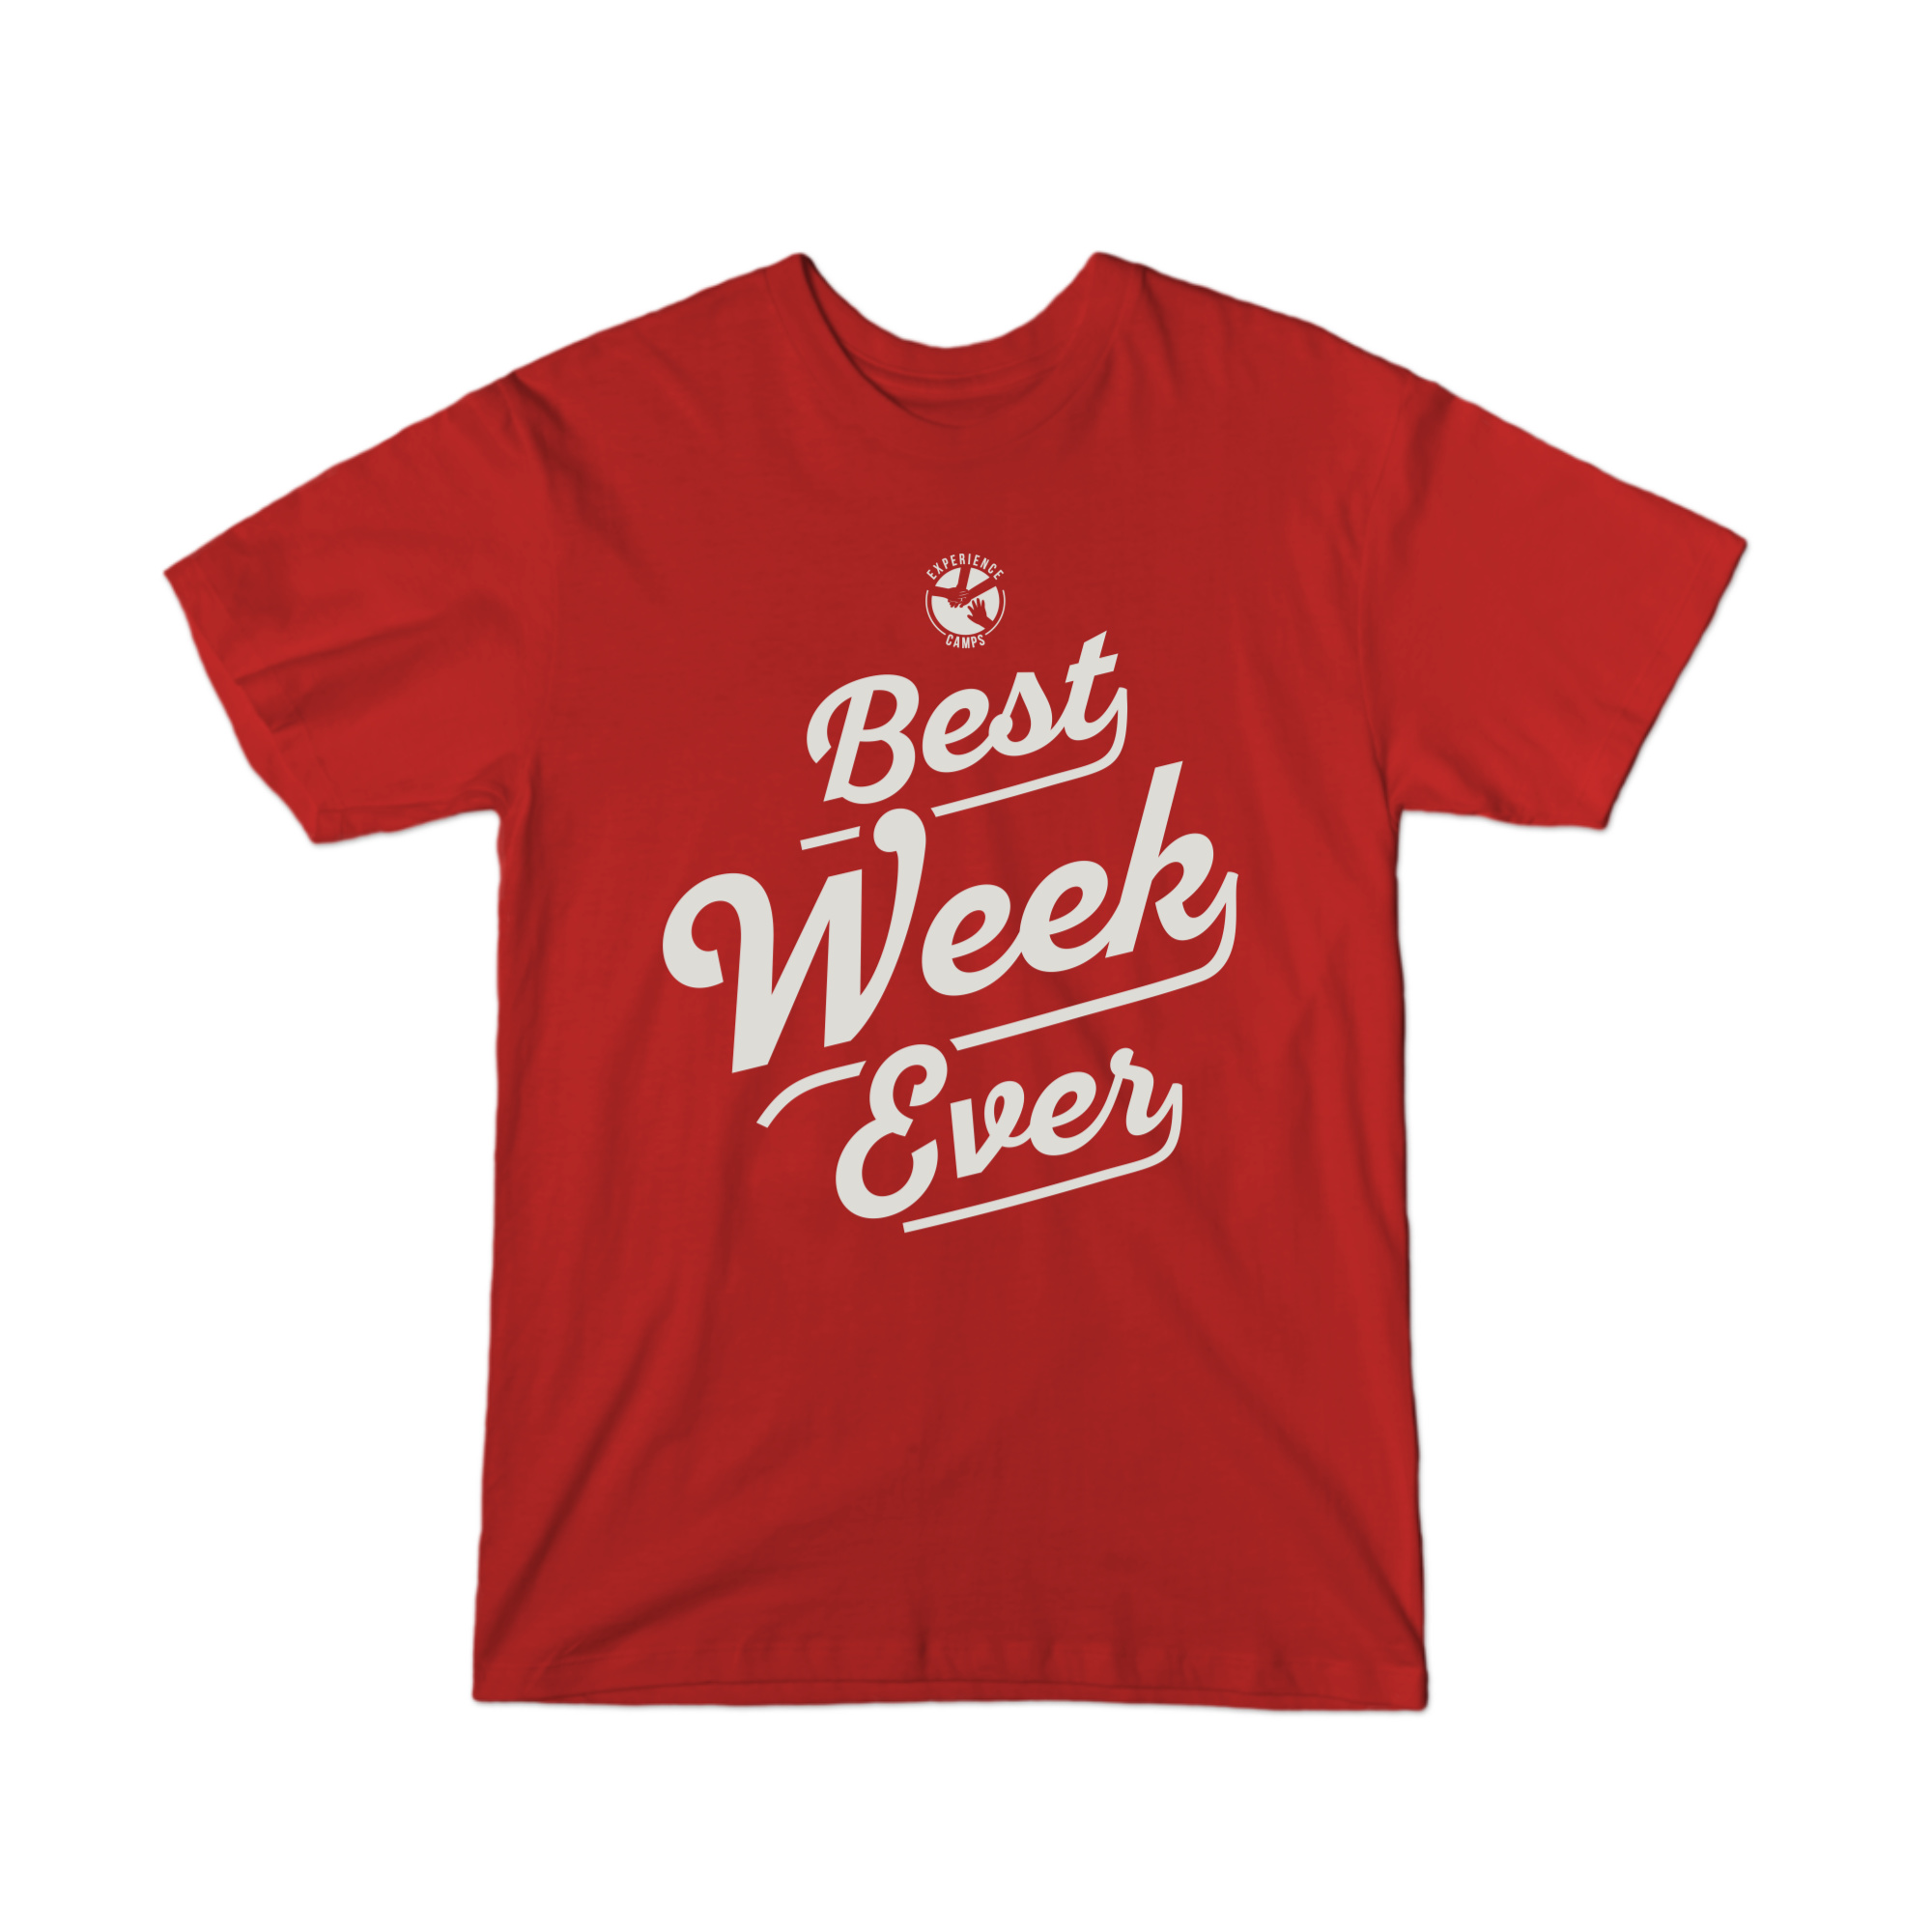 Best Week Ever Youth T-Shirt